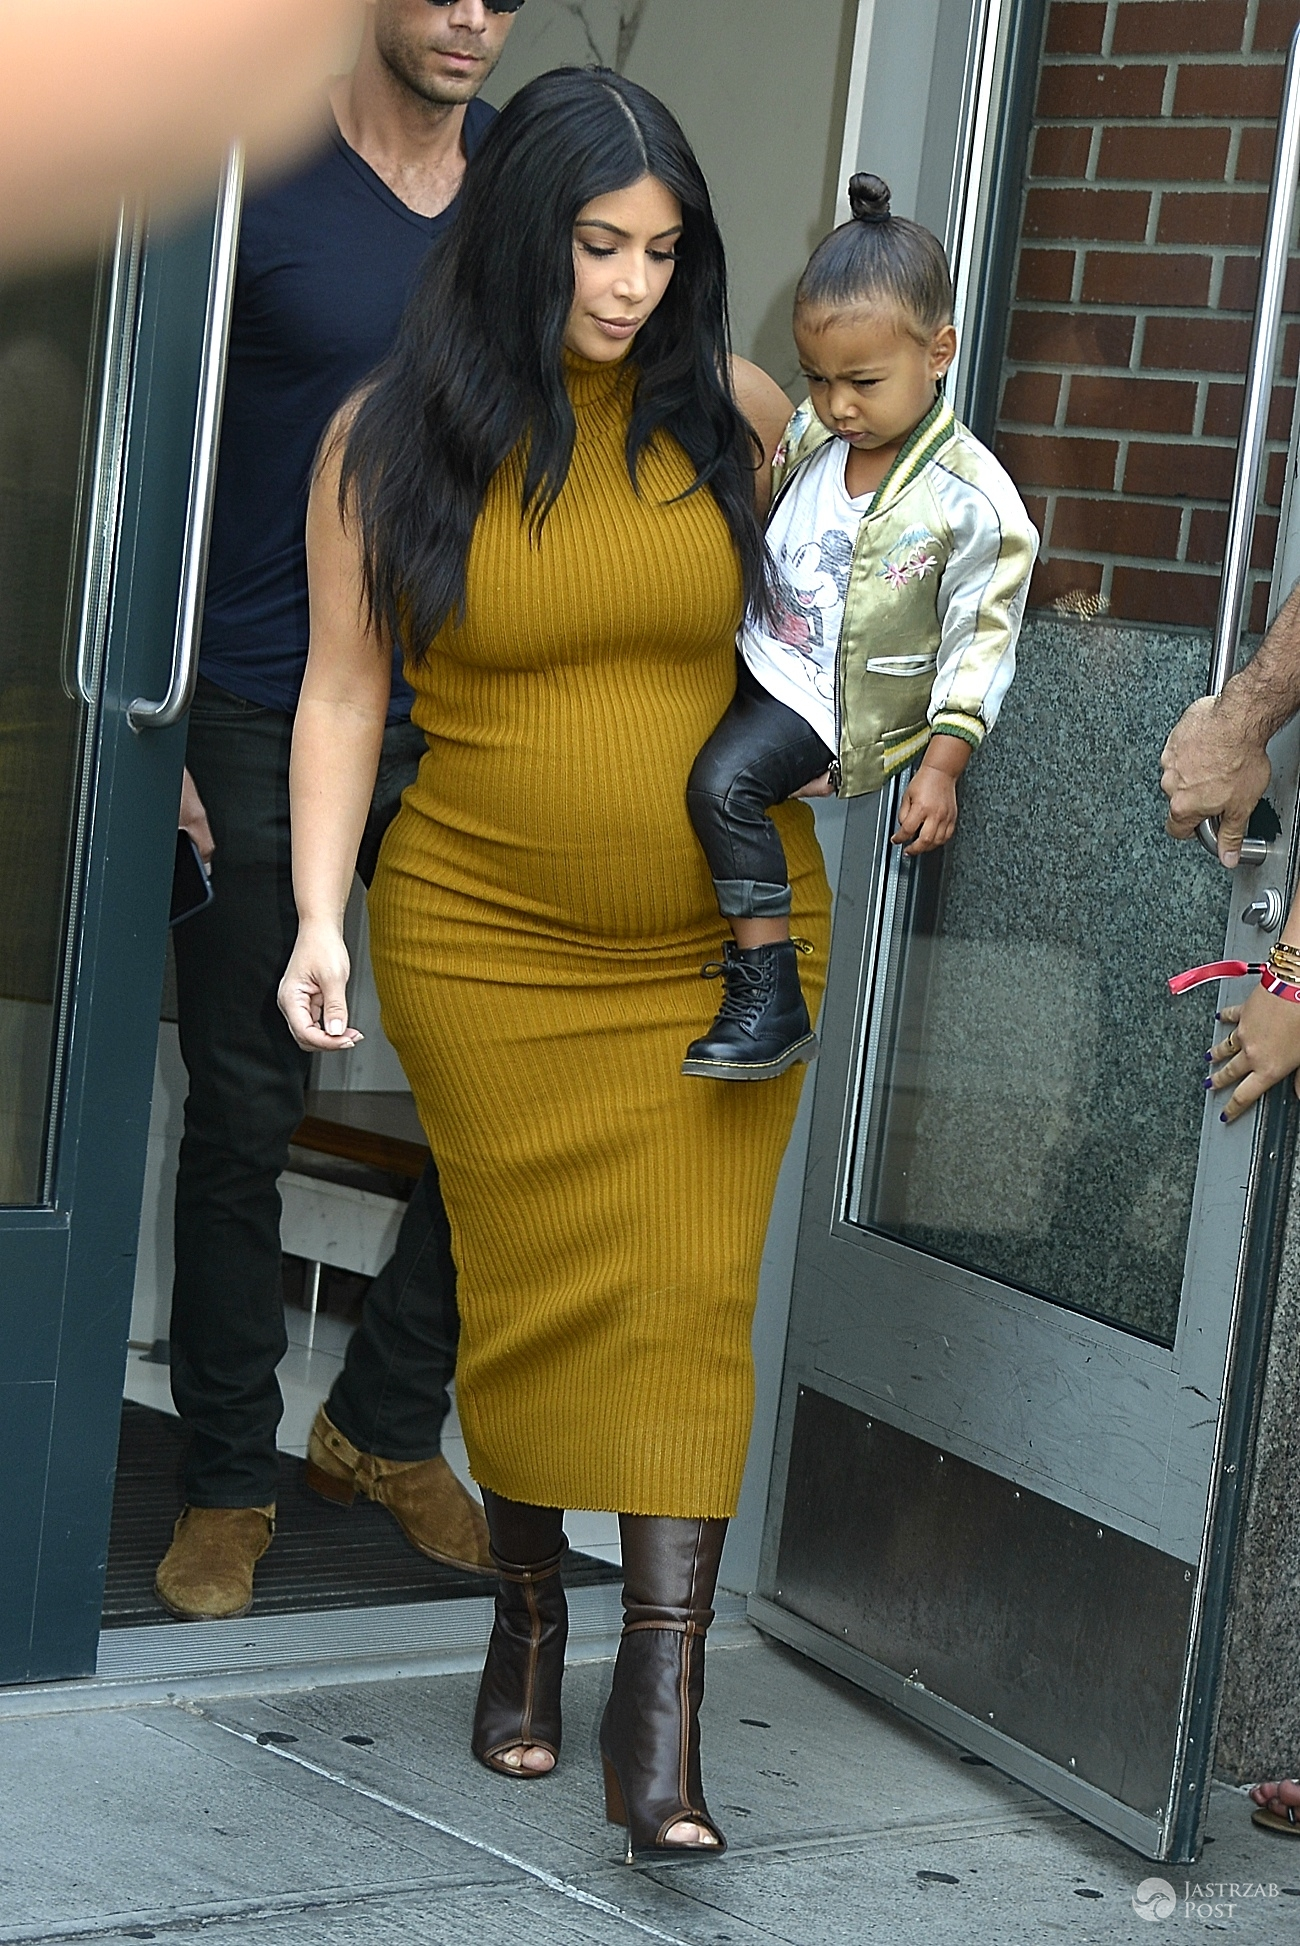 NEW YORK, NY - SEPTEMBER 9: Kim kardashian, north west seen in New York City on September 9, 2015. Photo Credit: Mpi67/MediaPunch